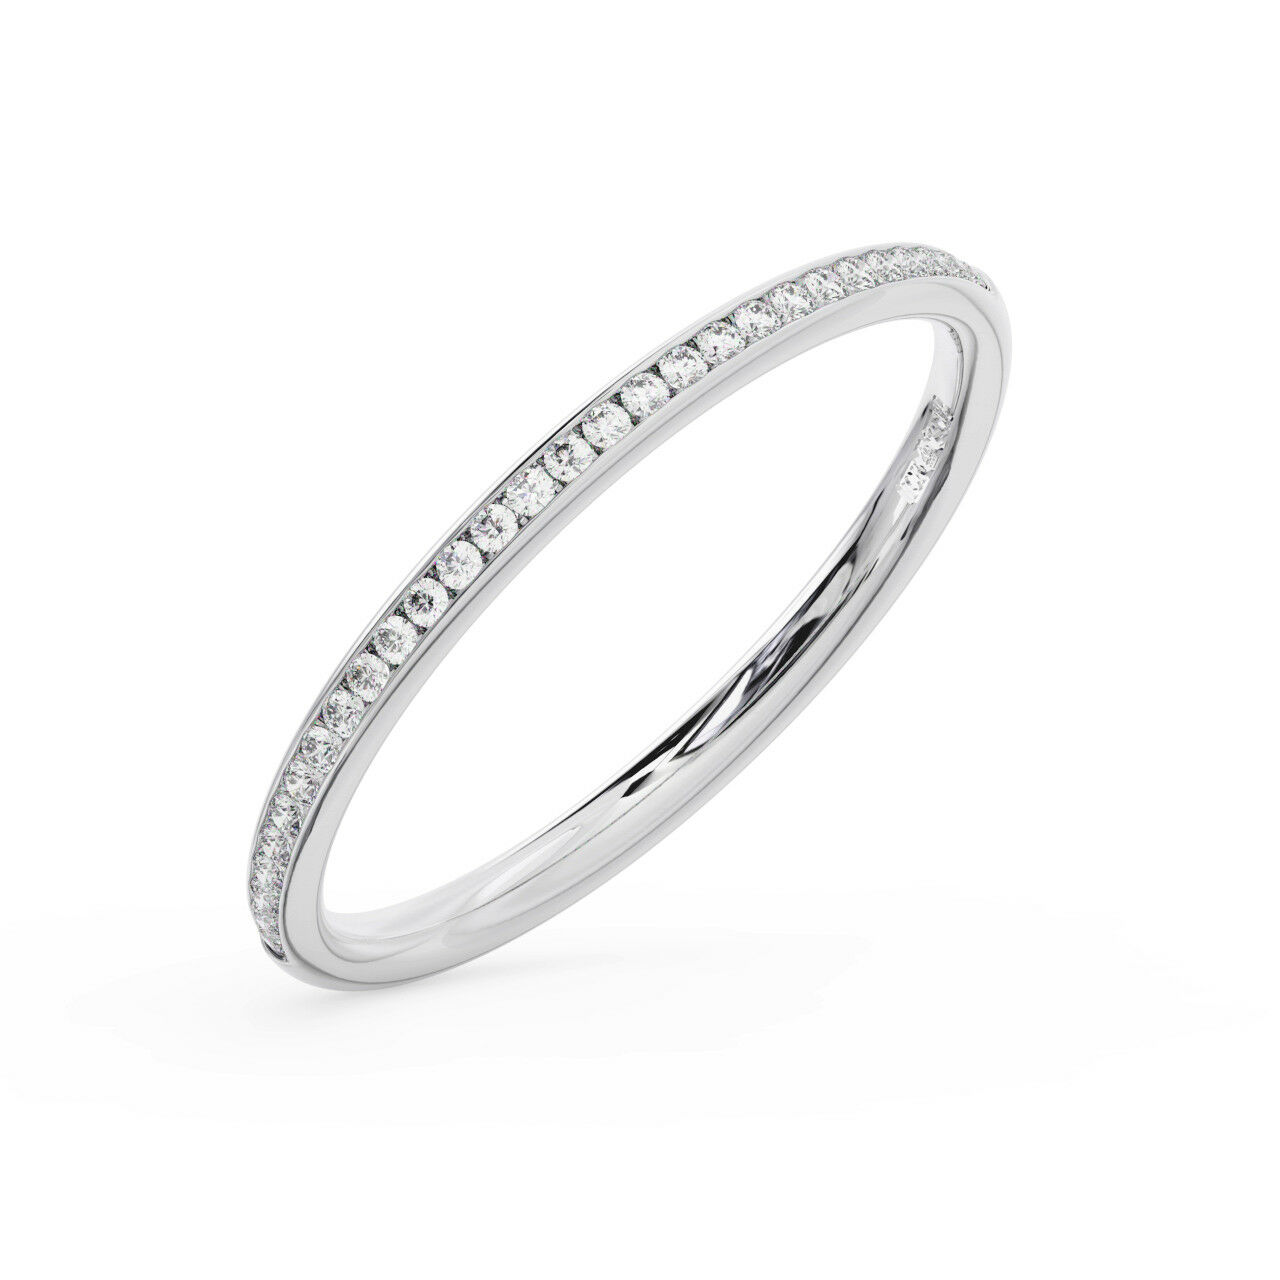 2mm Channel Set Round Brilliant Diamond Half Eternity Ring Available in Platinum